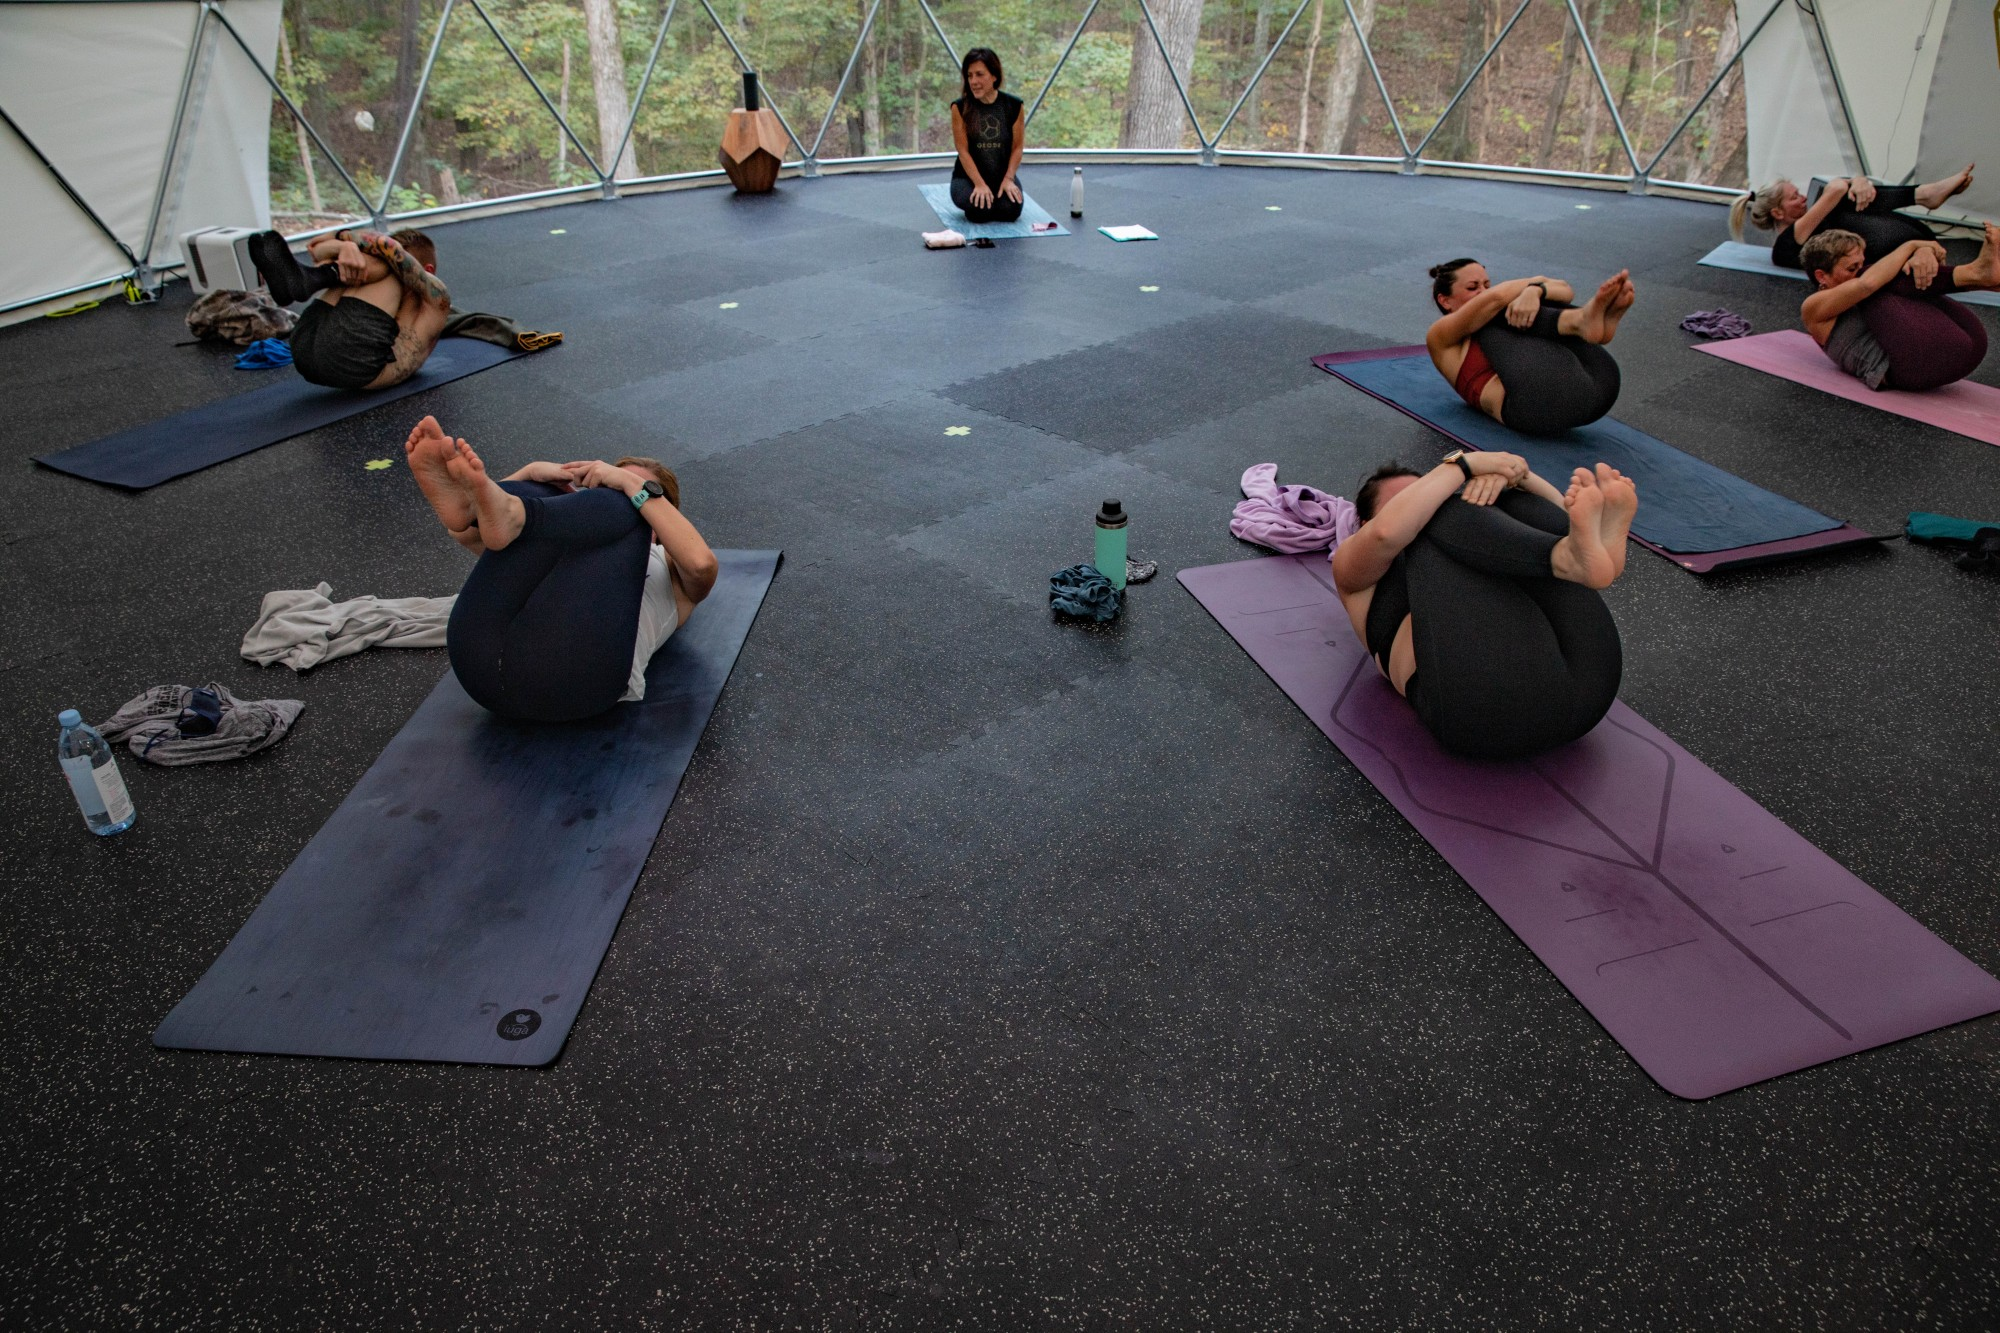 Class participants perform the Happy Baby pose in a hot power yoga session led by Marci Hedderson-Caroll at Geode Yoga + Fitness in Chillicothe, Ohio, on the evening of Monday, Oct. 5, 2020.